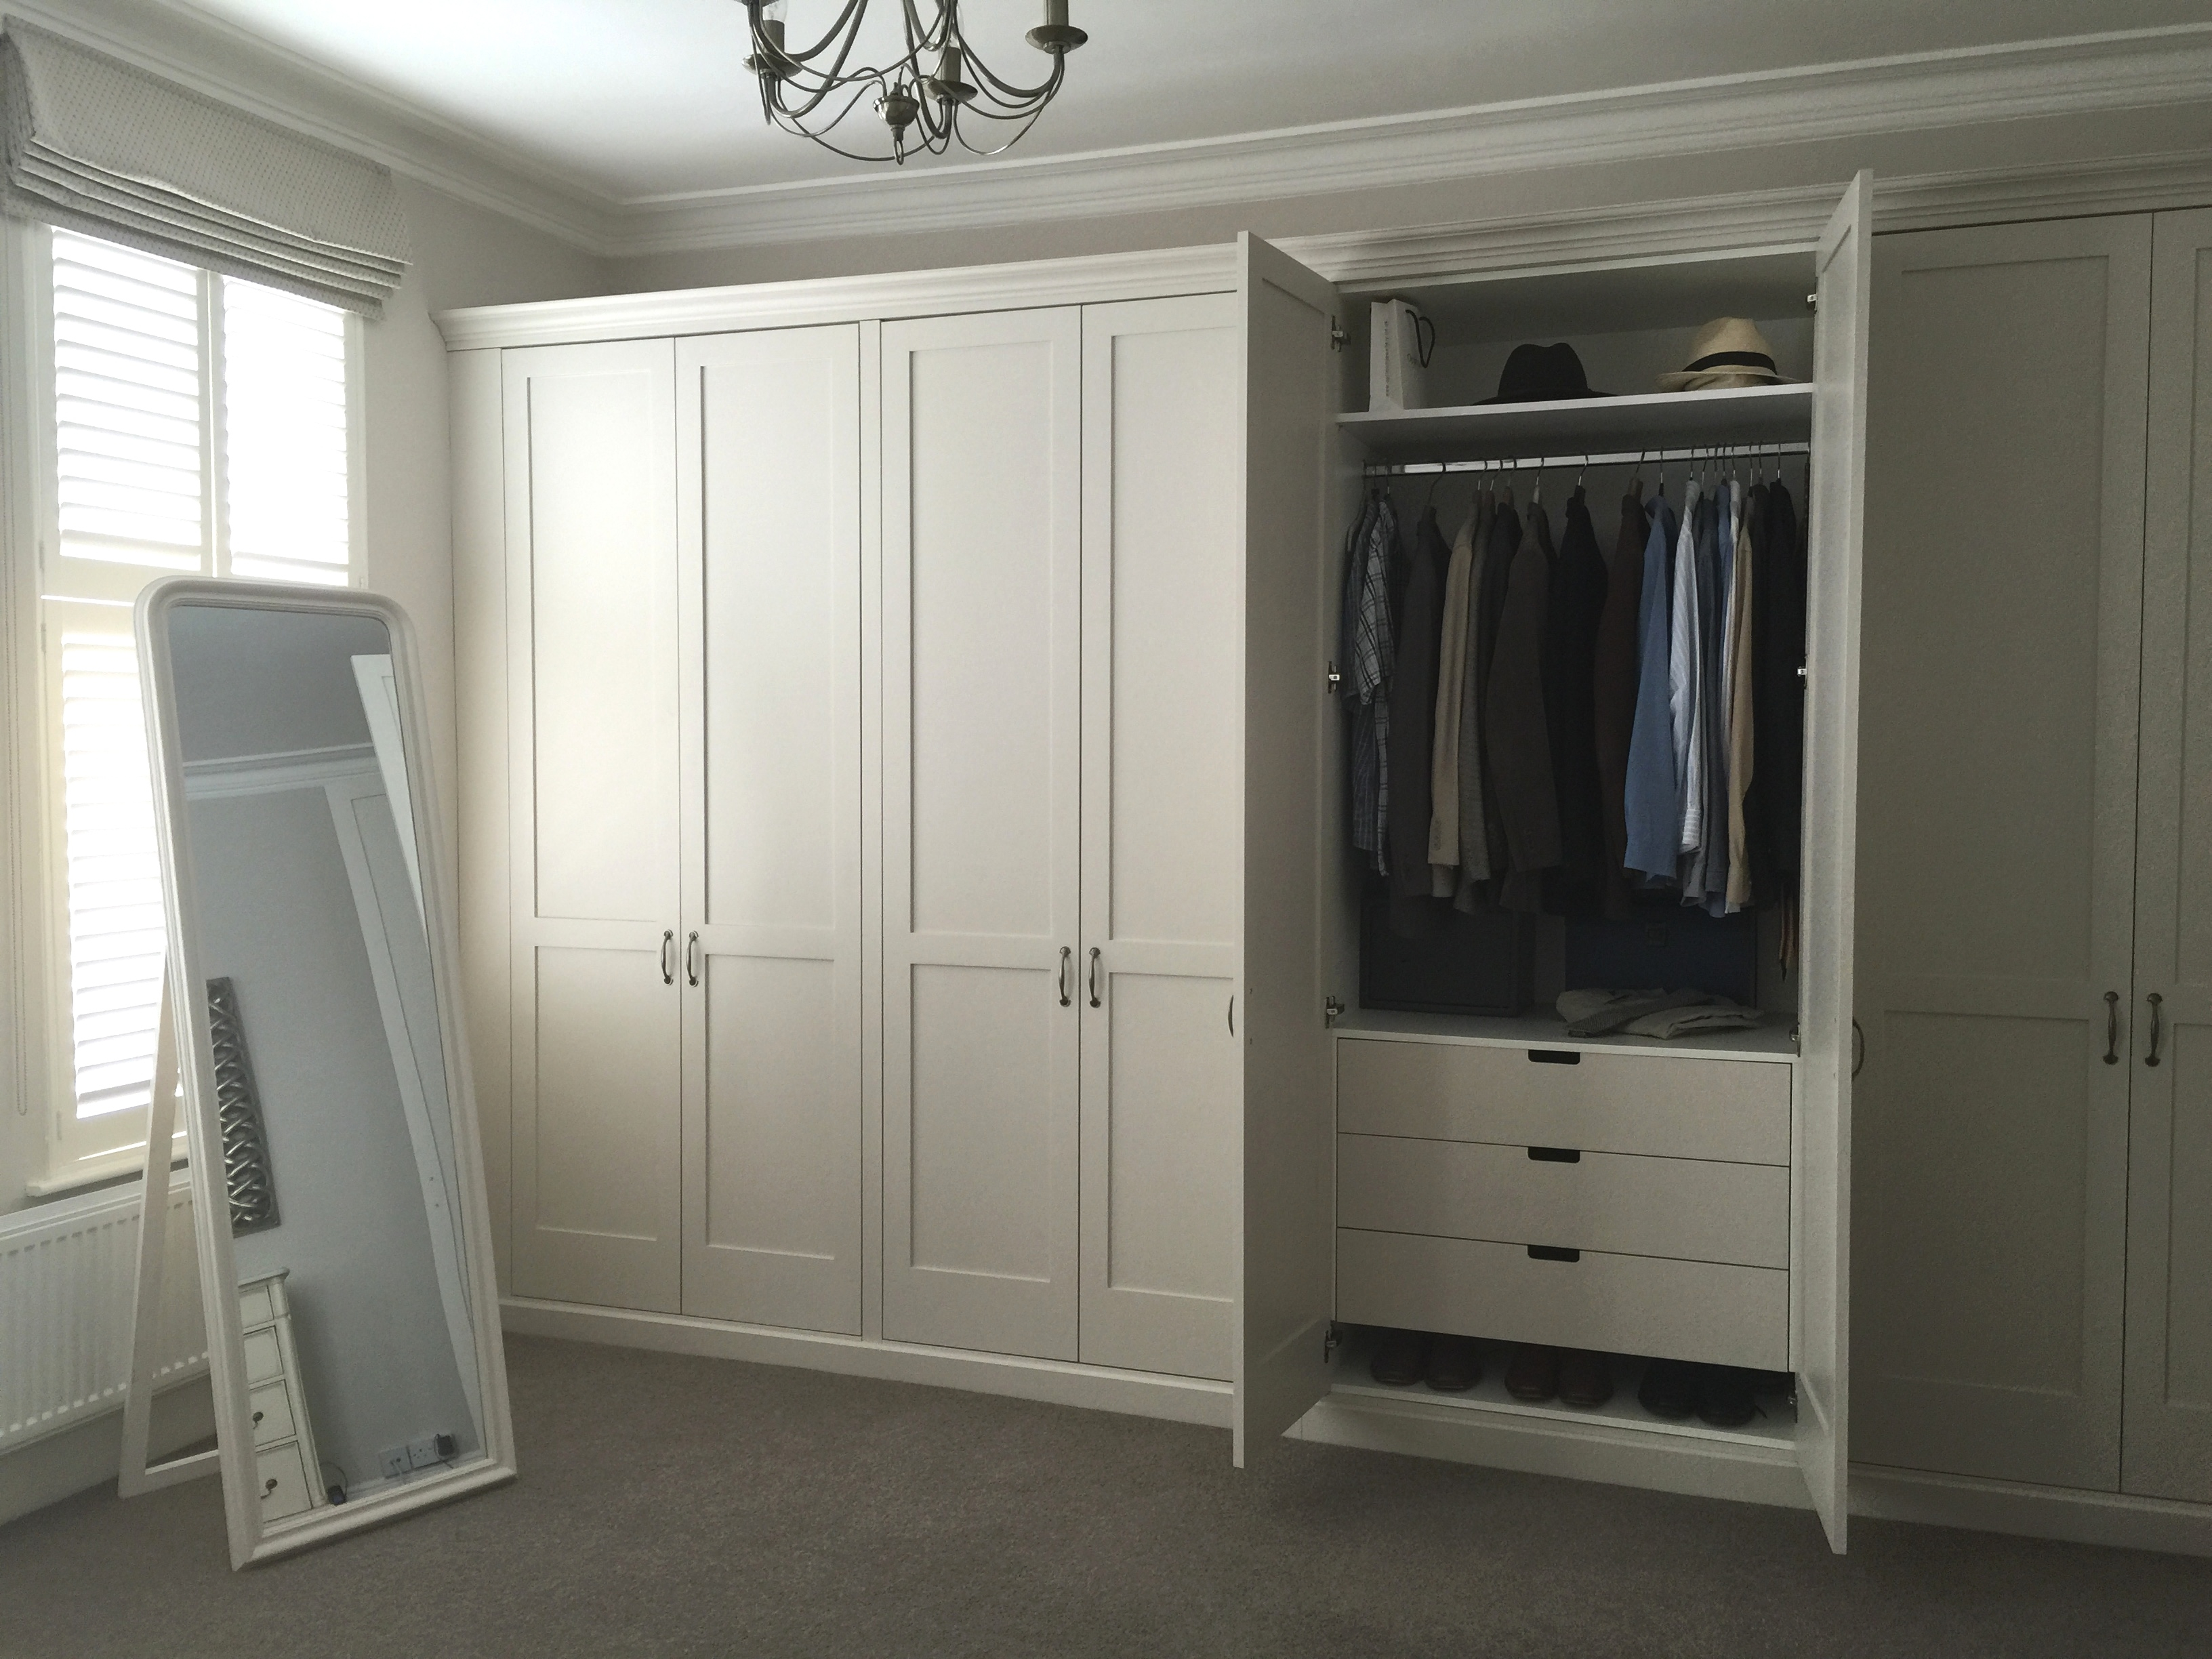 Traditional Shaker Wardrobes With Drawers Inside Shelves And Within Wardrobes With Drawers And Shelves (View 11 of 15)